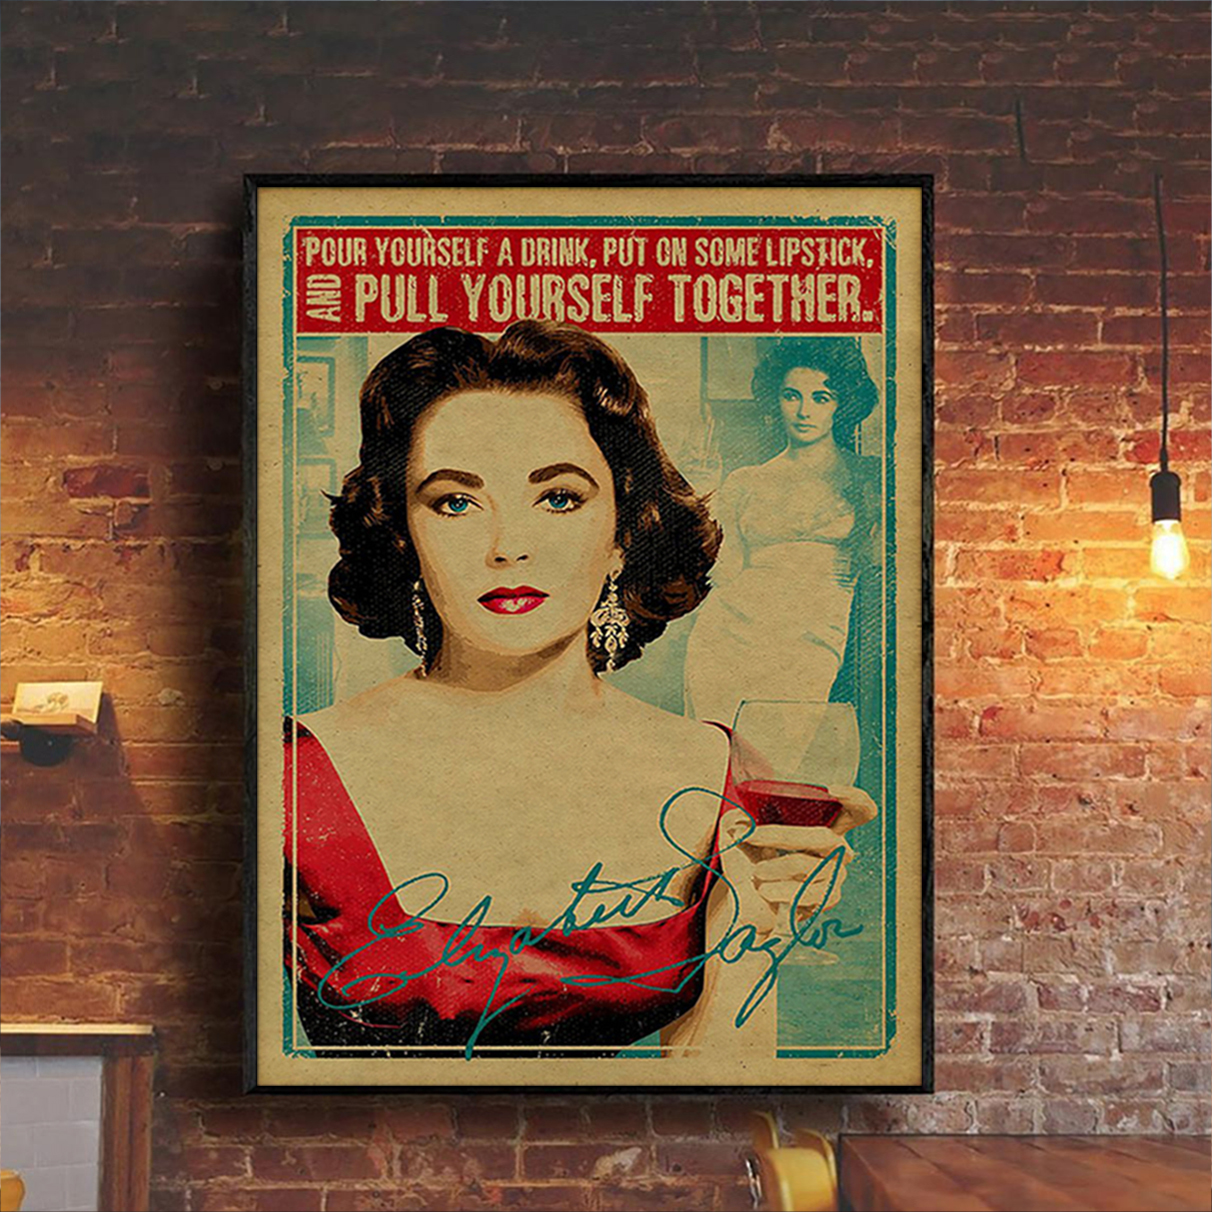 Elizabeth taylor pour yourself a drink put on some lipstick poster A2